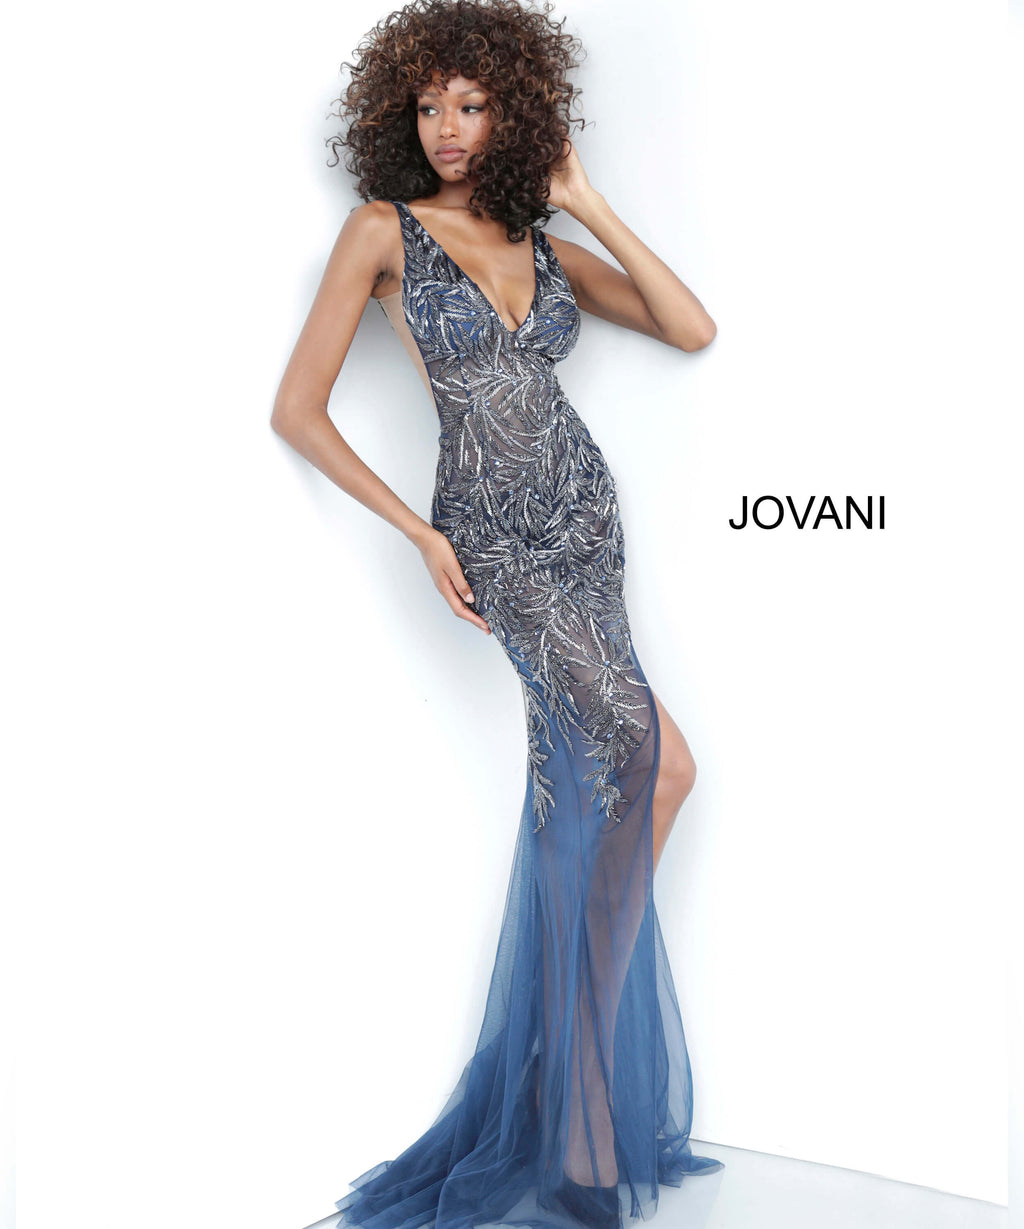 JOVANI 1863 Embellished Tulle Trumpet Dress